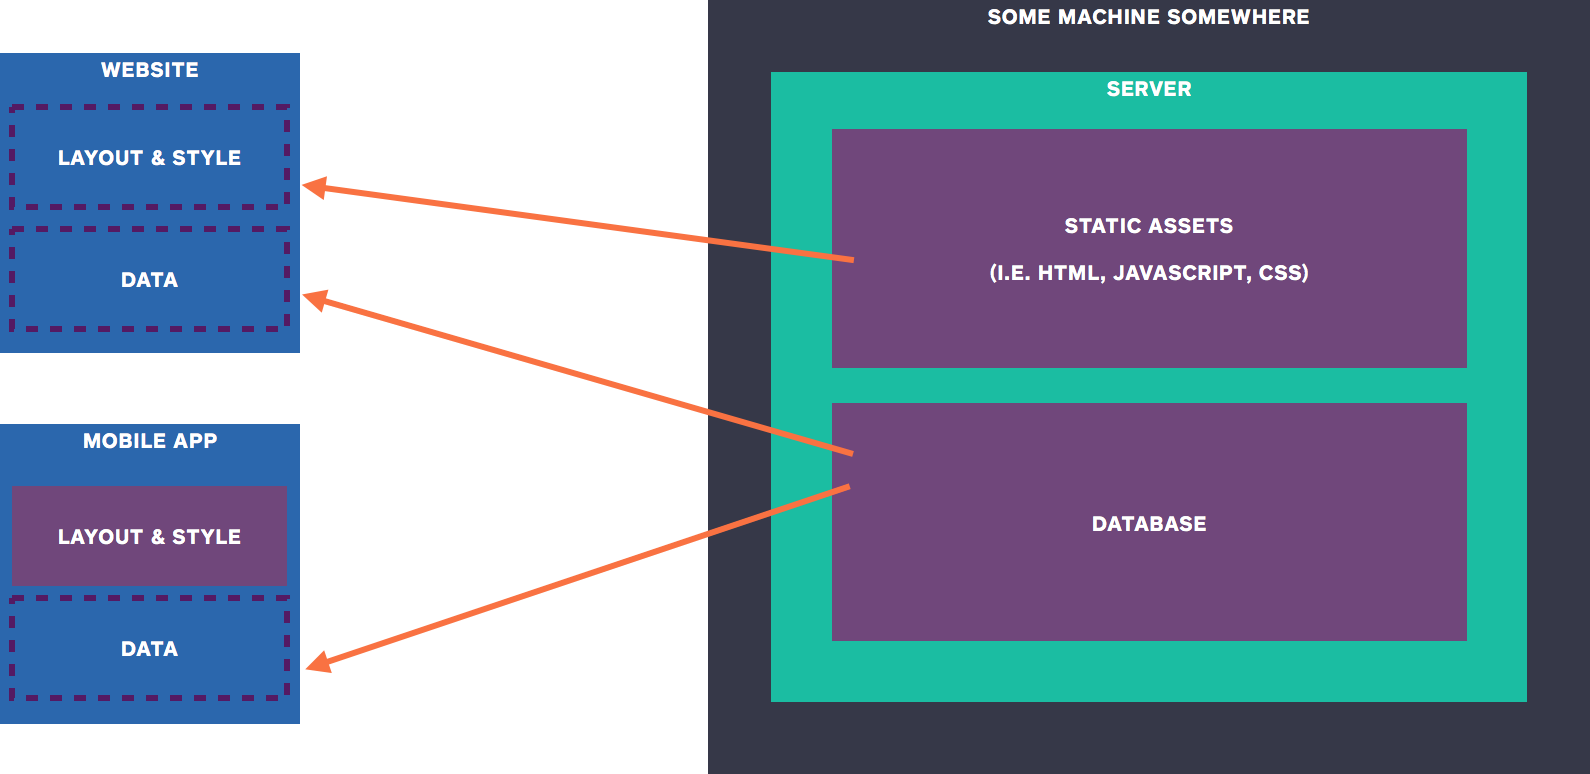 Backend Diagram with Database